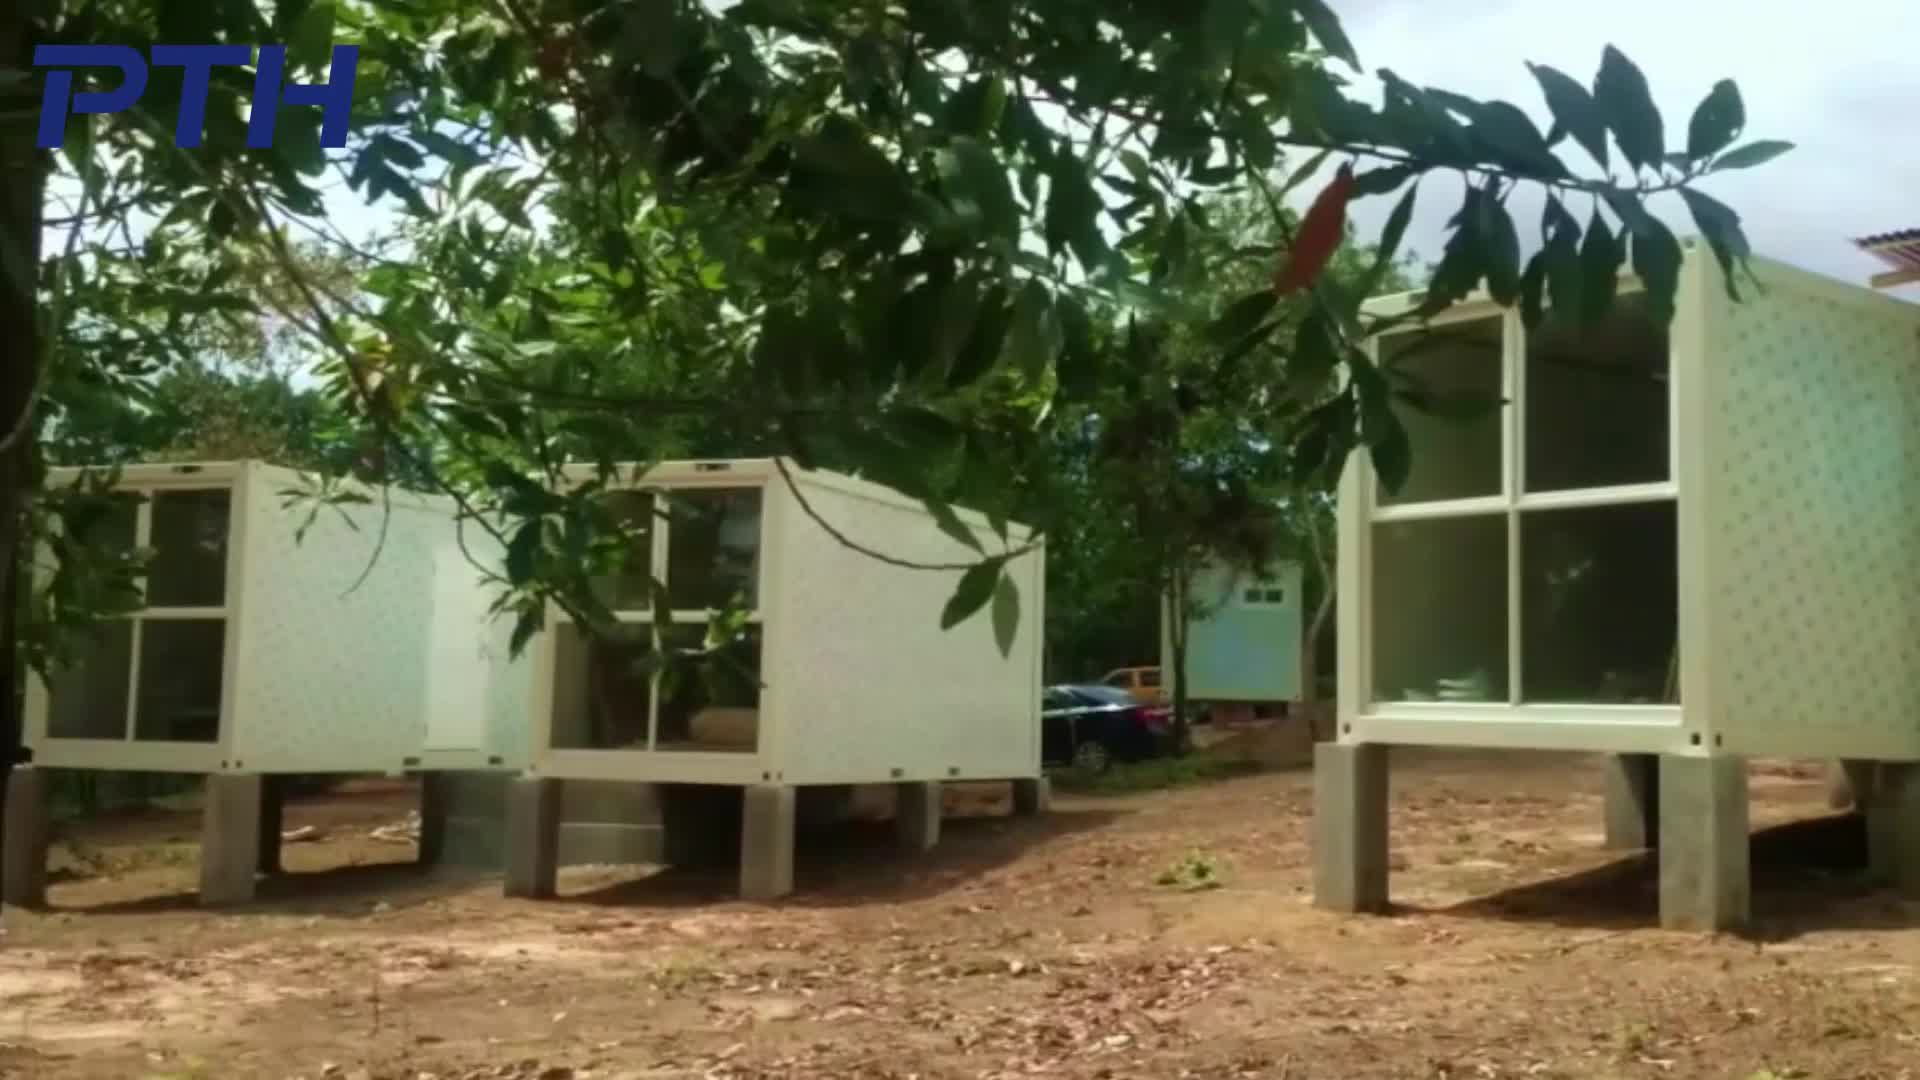 PTH prefabricated modular container house for mining camp/accommodation